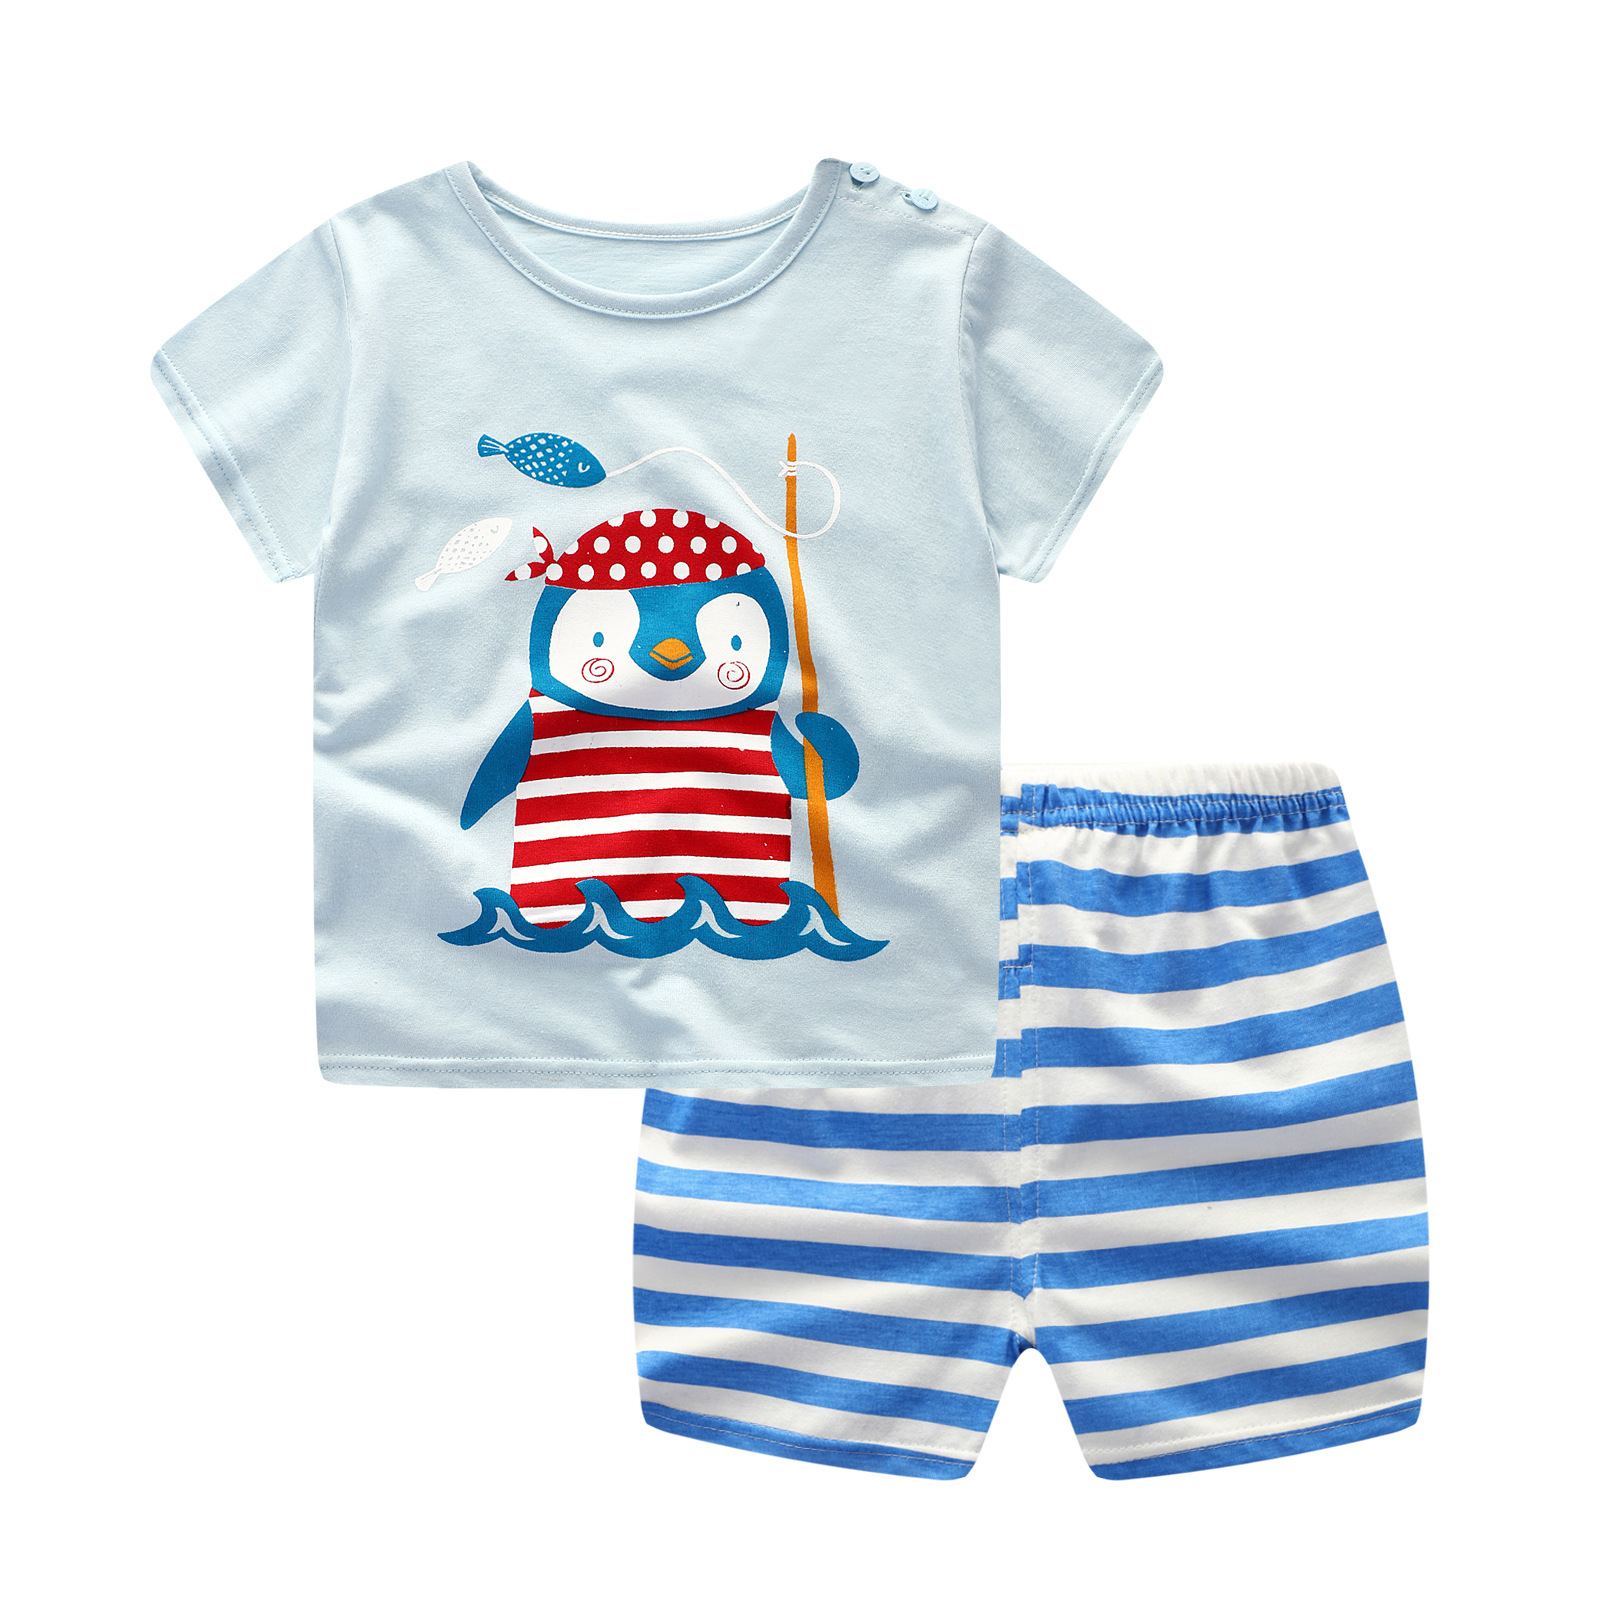 Baby Sets Leisure Sports Boy T-shirt + Shorts Sets Toddler Clothing Baby Boy Clothes Newborn Girl Clothes Baby Girl Outfits